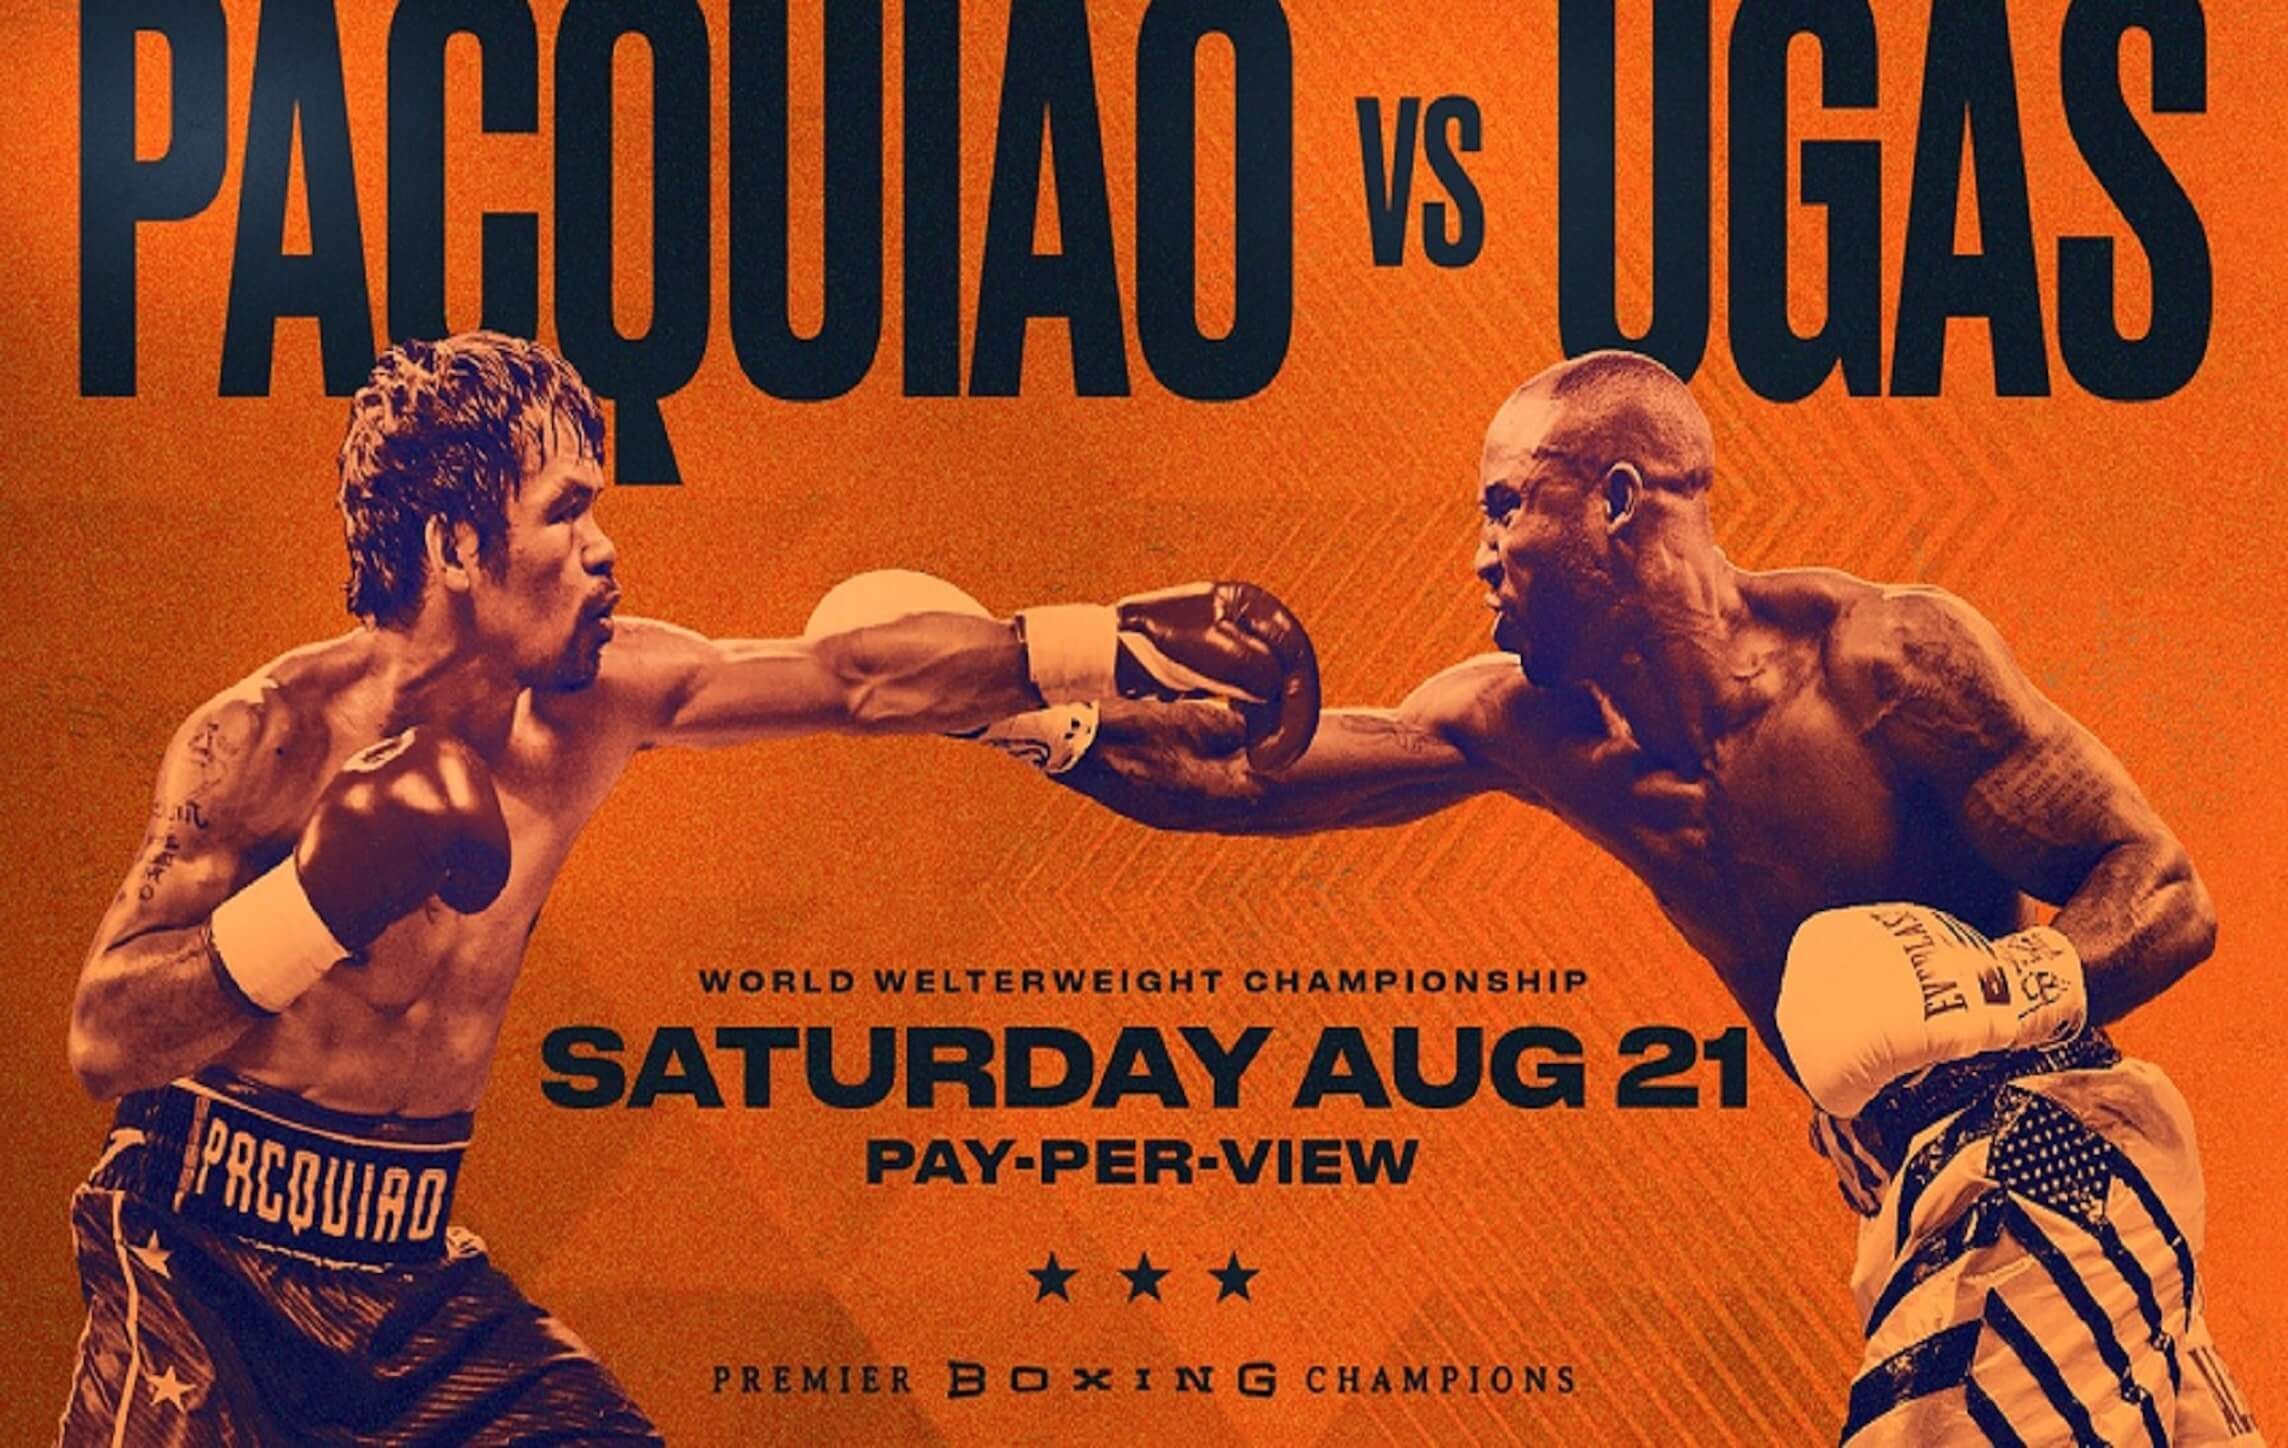 Manny Pacquiao vs. Ugas Pay Per View | Watch with Xfinity